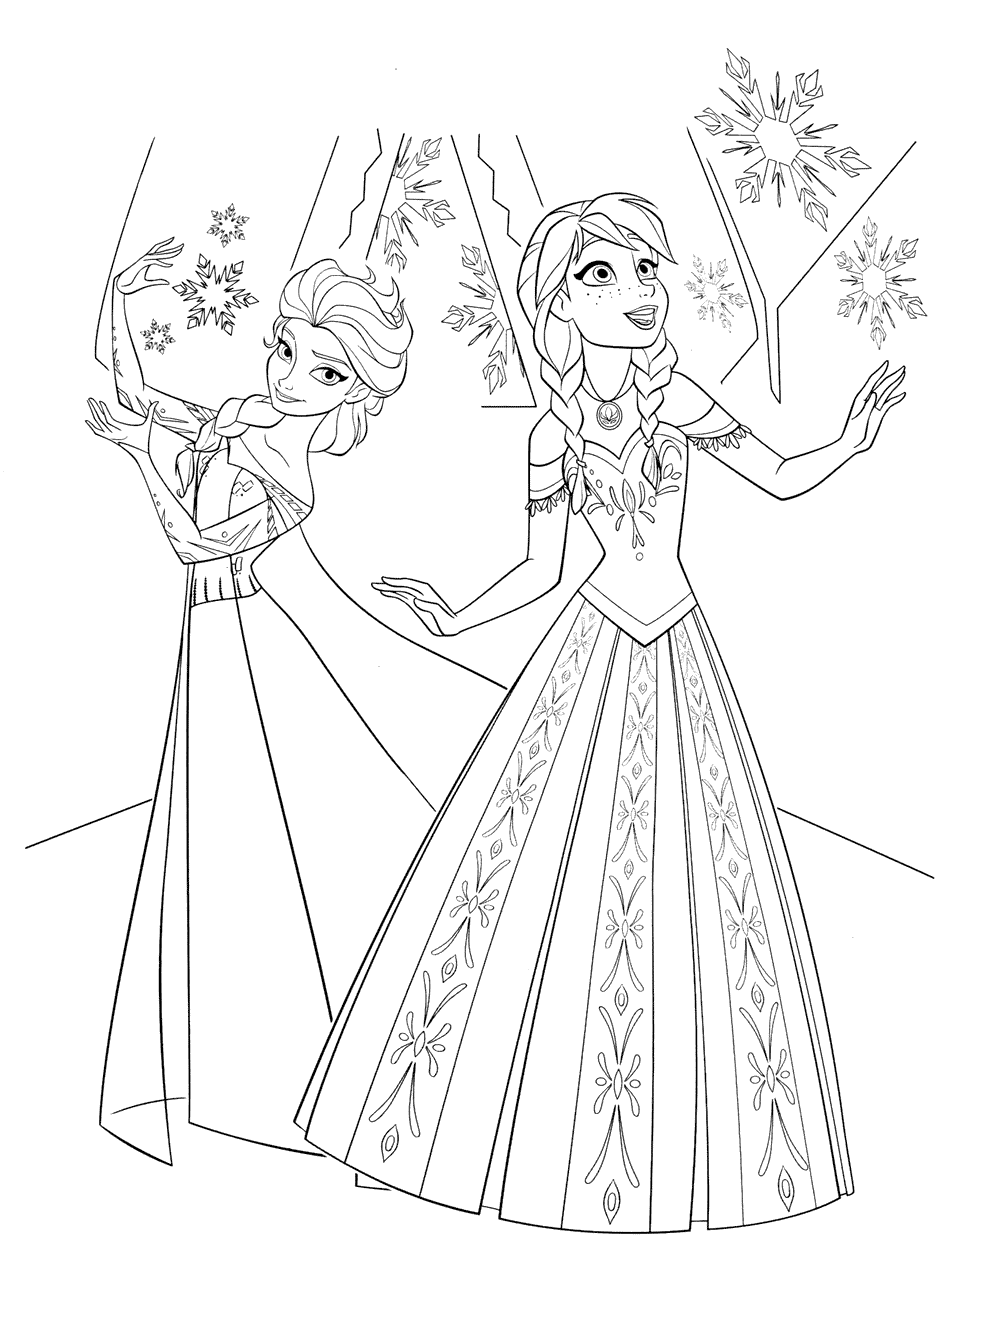 Elsa and Anna coloring pages to download and print for free